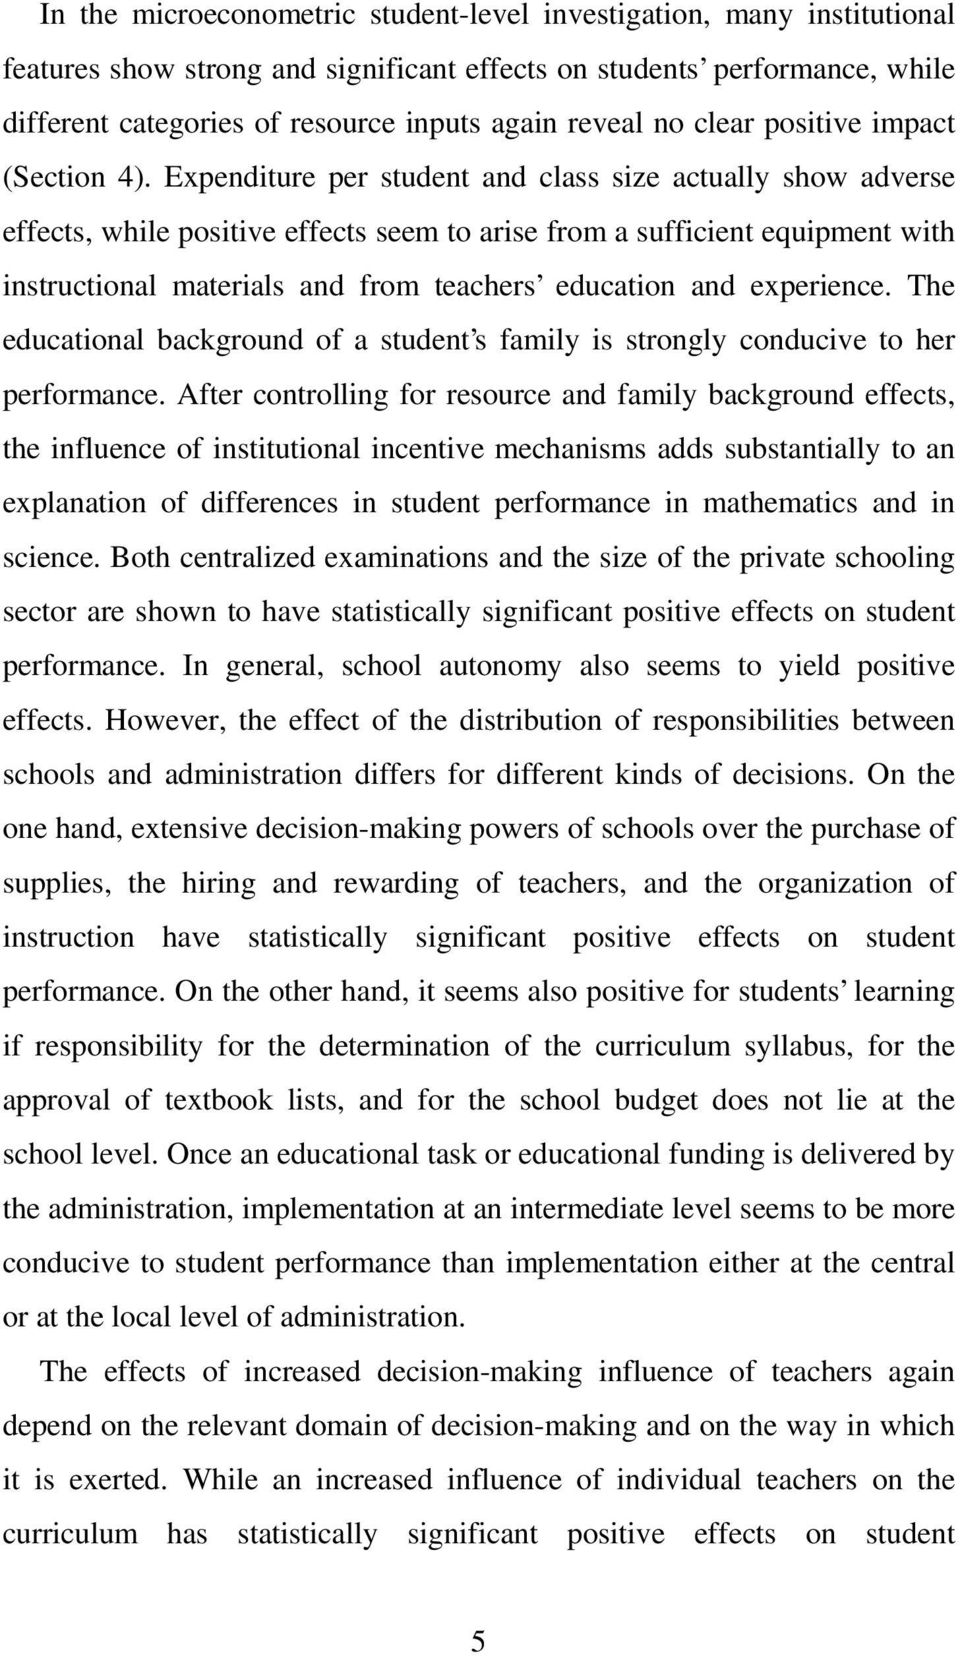 Expenditure per student and class size actually show adverse effects, while positive effects seem to arise from a sufficient equipment with instructional materials and from teachers education and